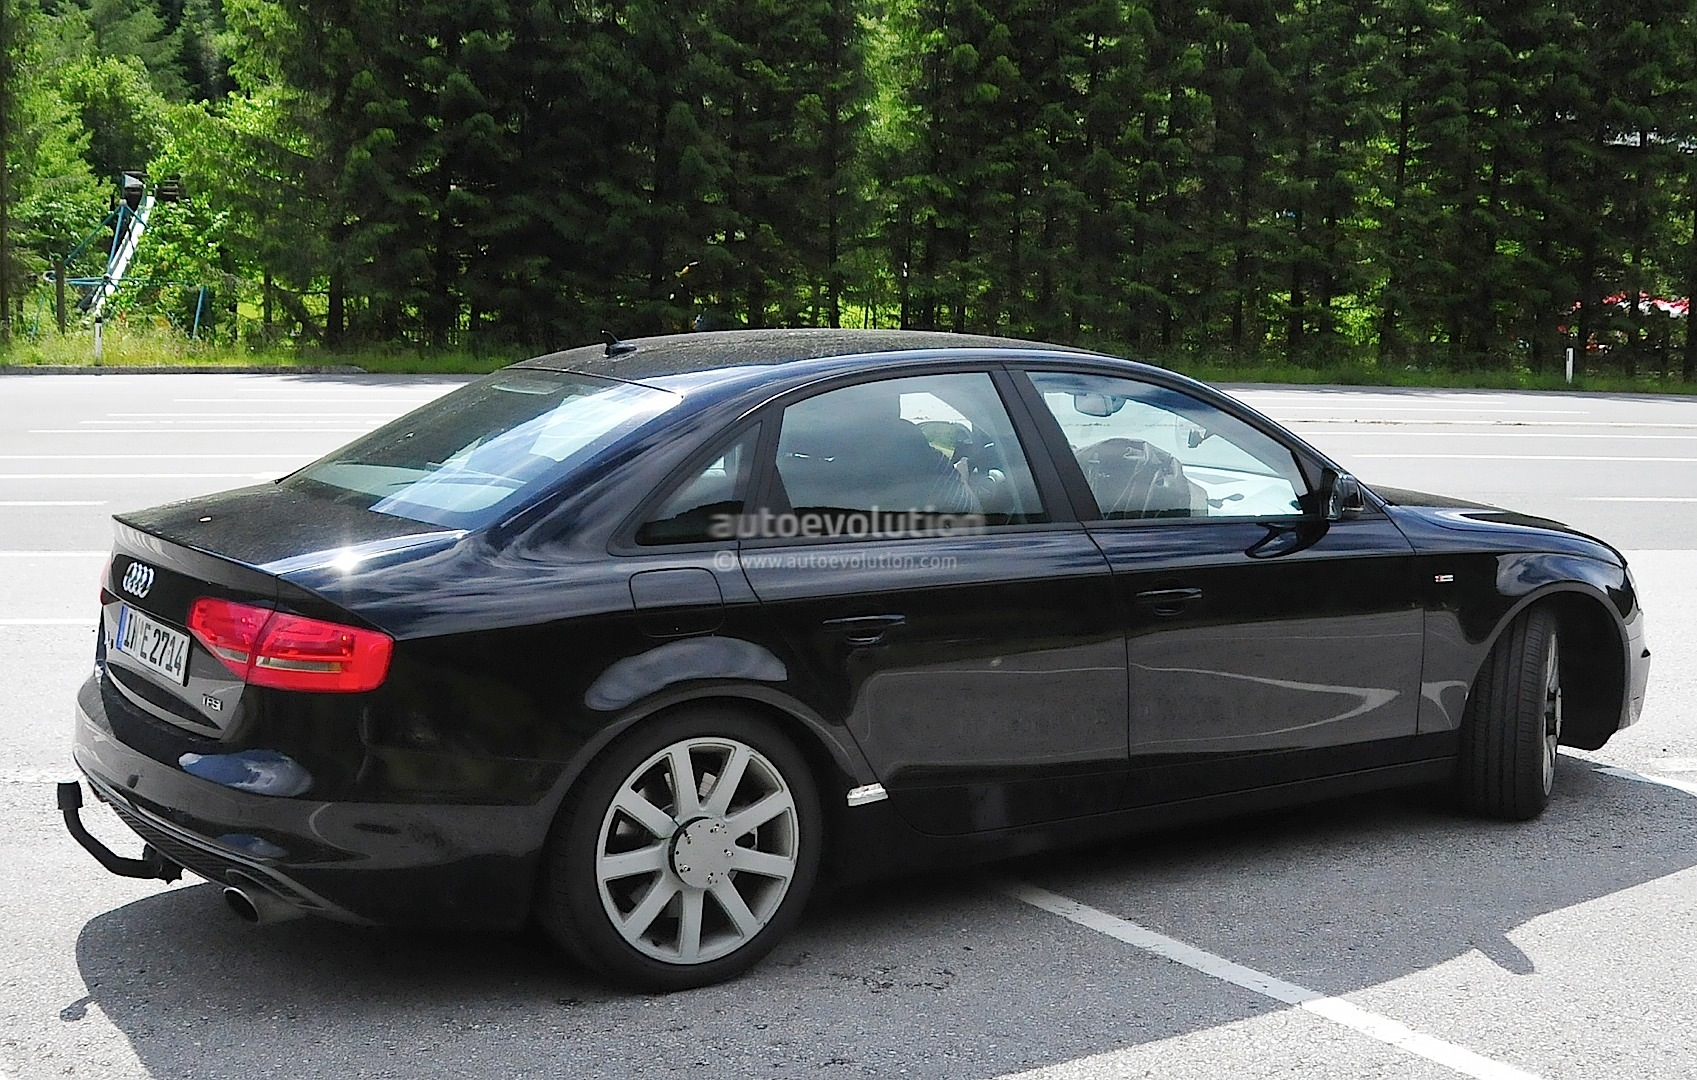 2016 Audi A4 Spyshots Reveal New MMI Infotainment Display ...